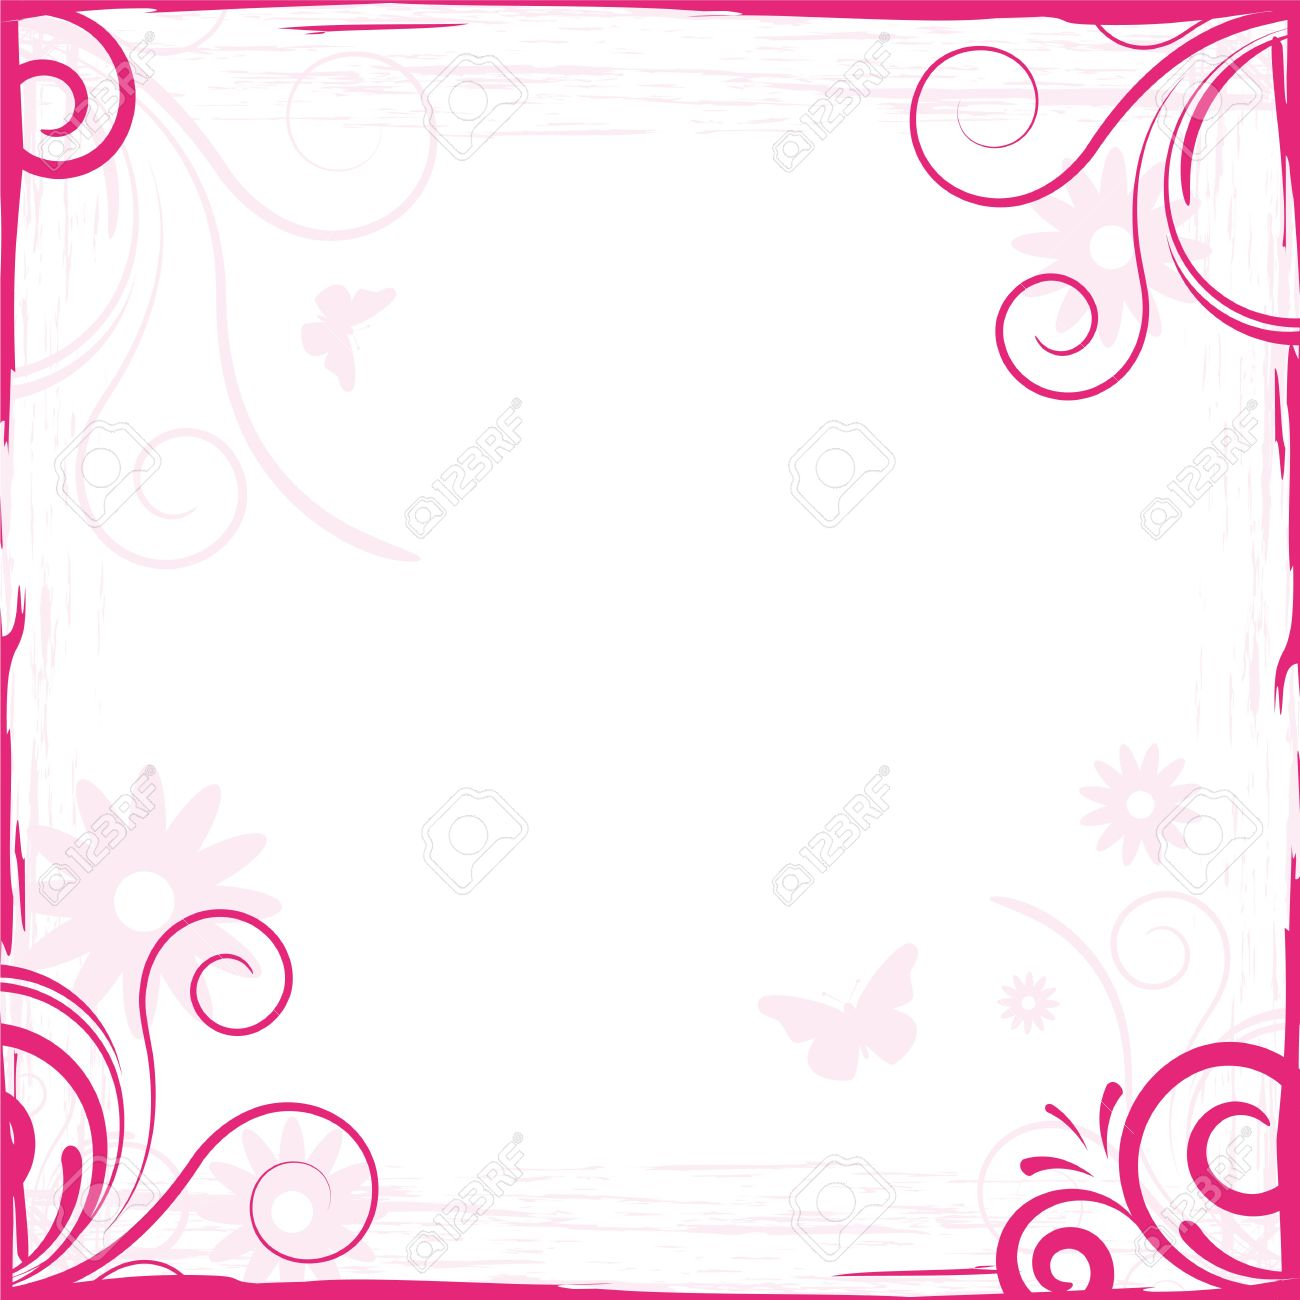 abstract pink floral background frame for design stock photo 6293161